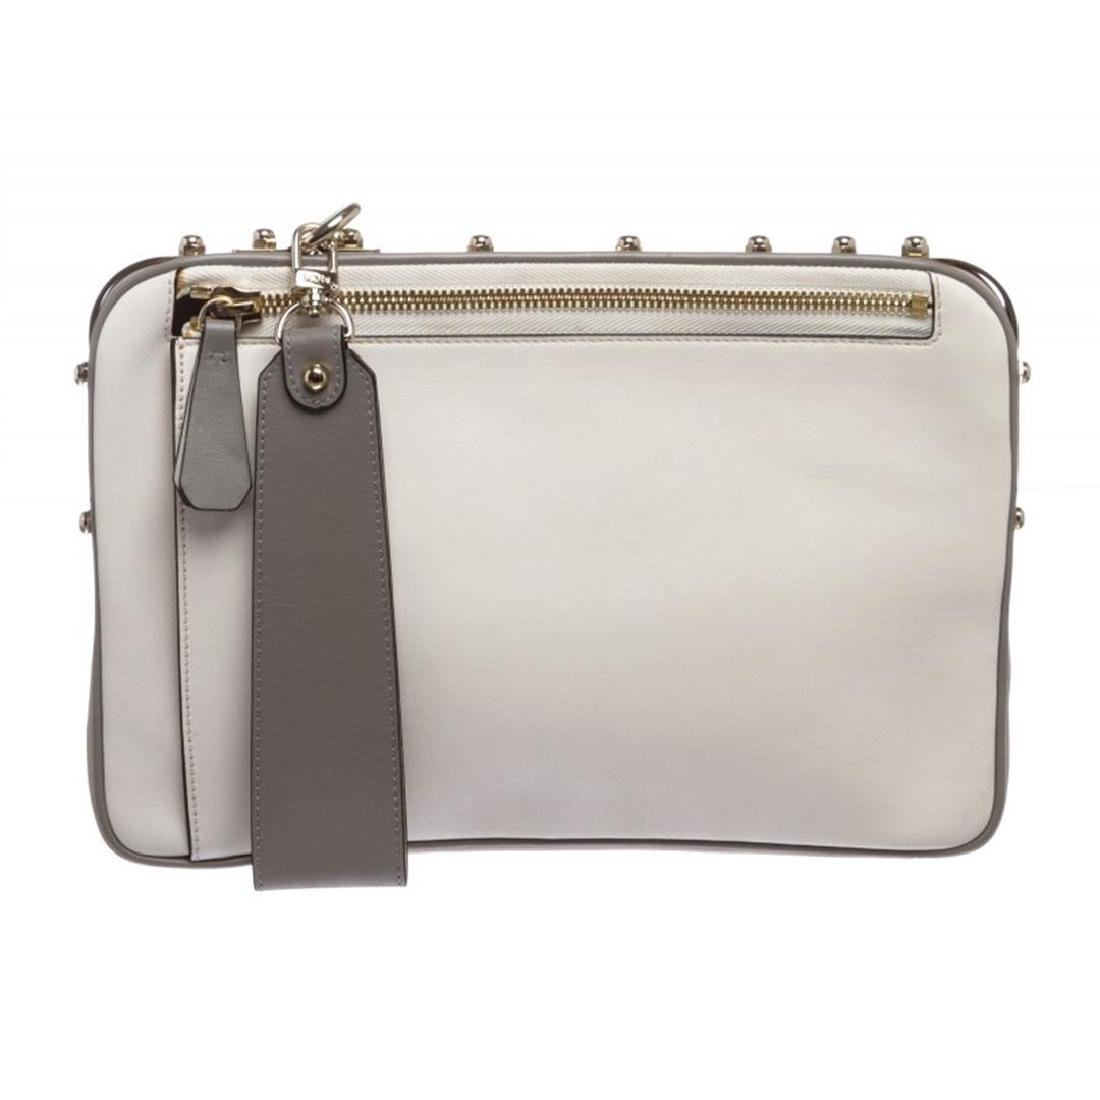 MCM White and Gray Leather Two Tone Cubism Medium